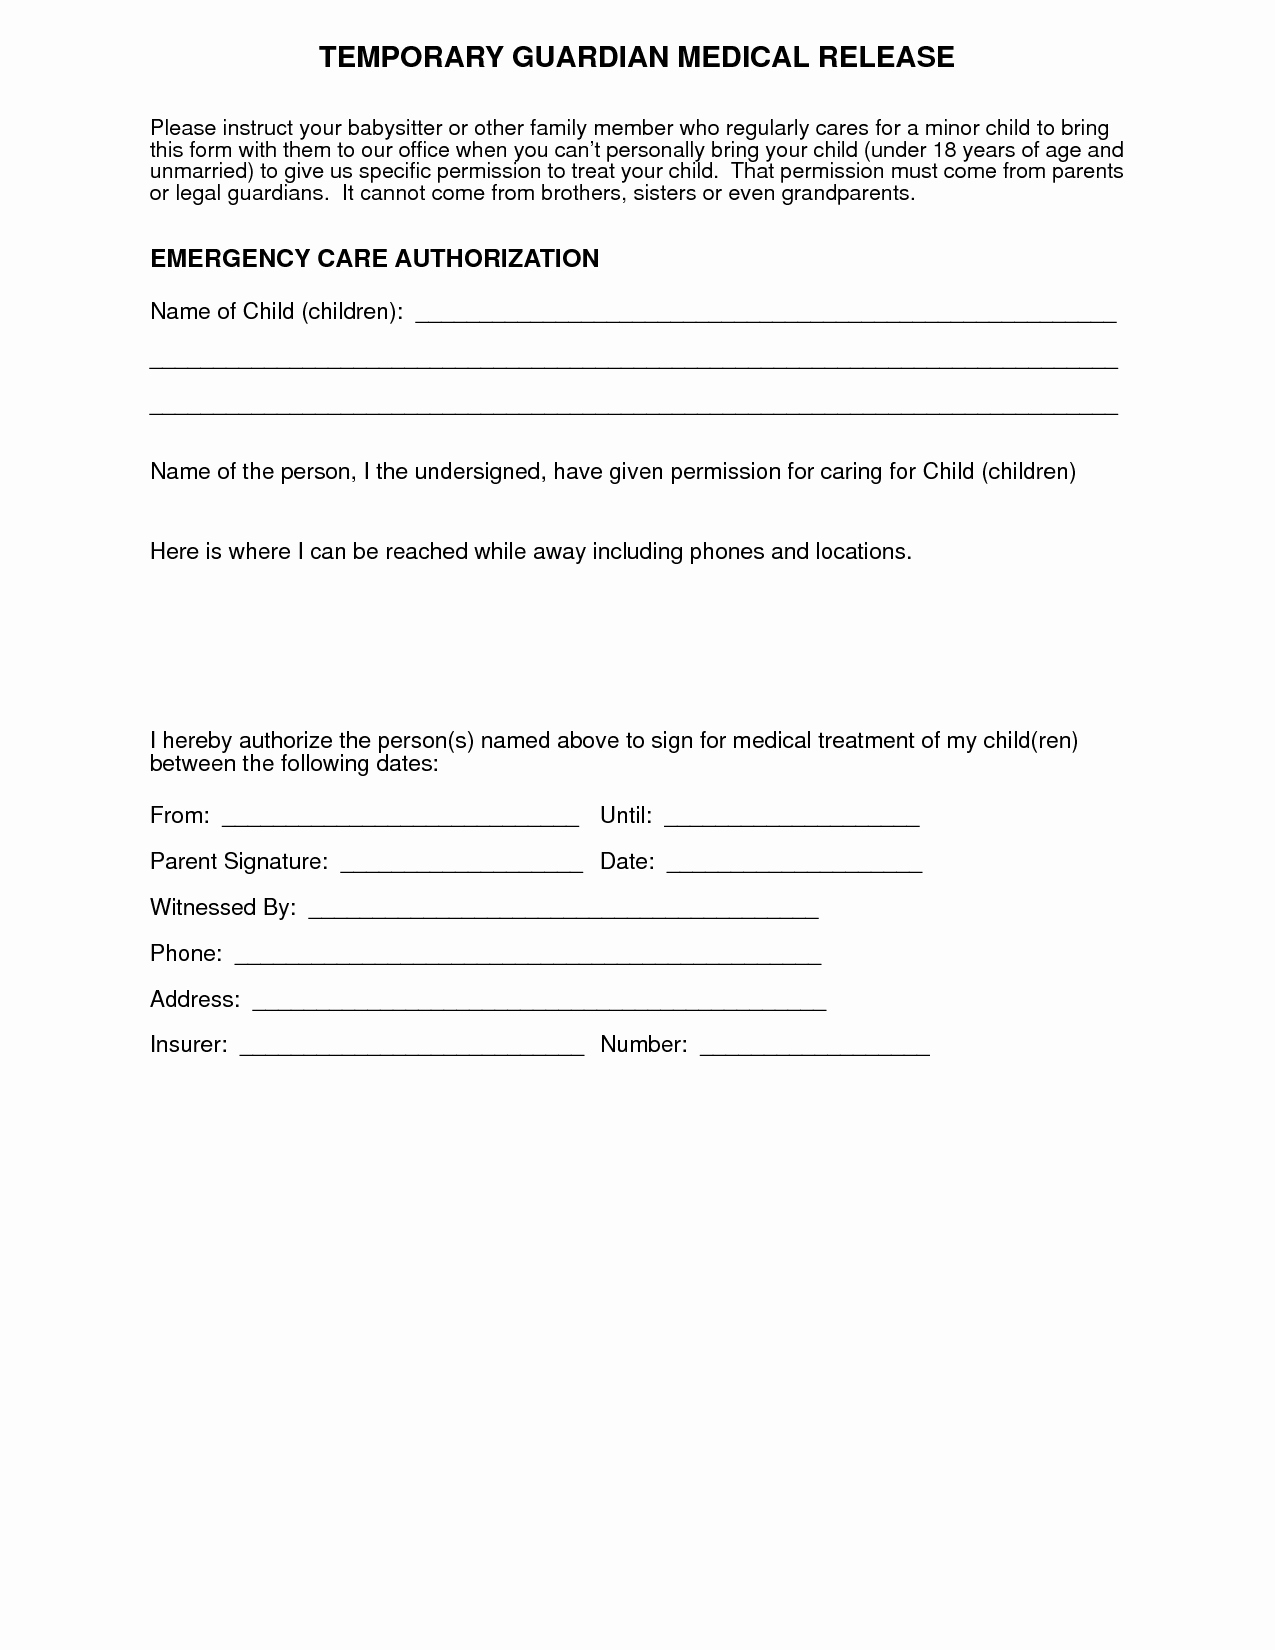 Child Care Authorization Letter Template - Free Medical Consent form Medical Release form Best Die Besten 25